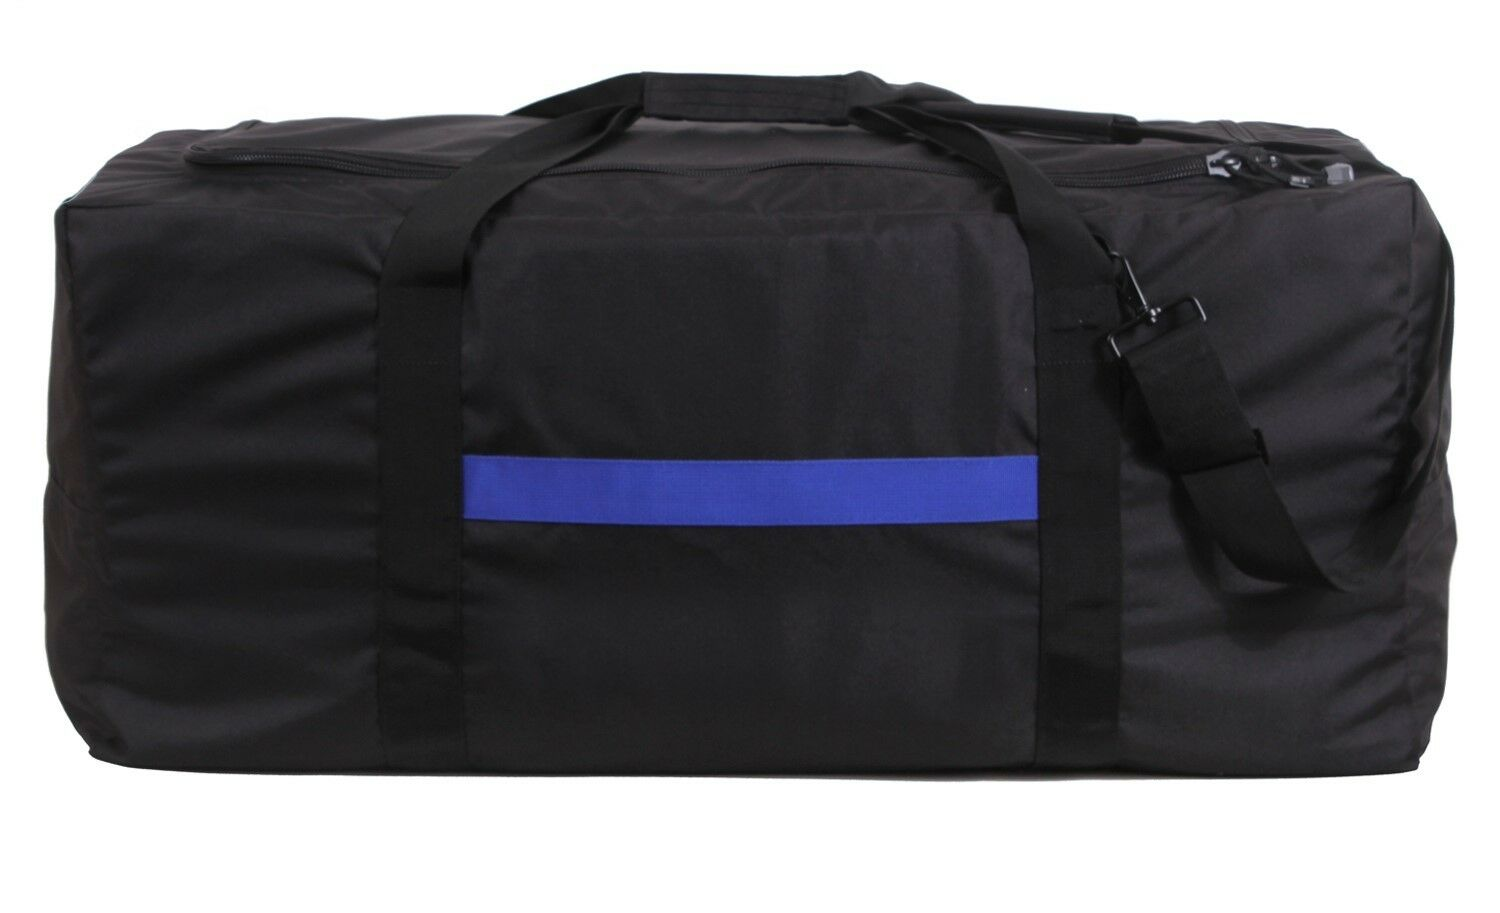 Thin  bluee Line Modular Gear Bag Law Enforcement Support redhco 8673  official authorization